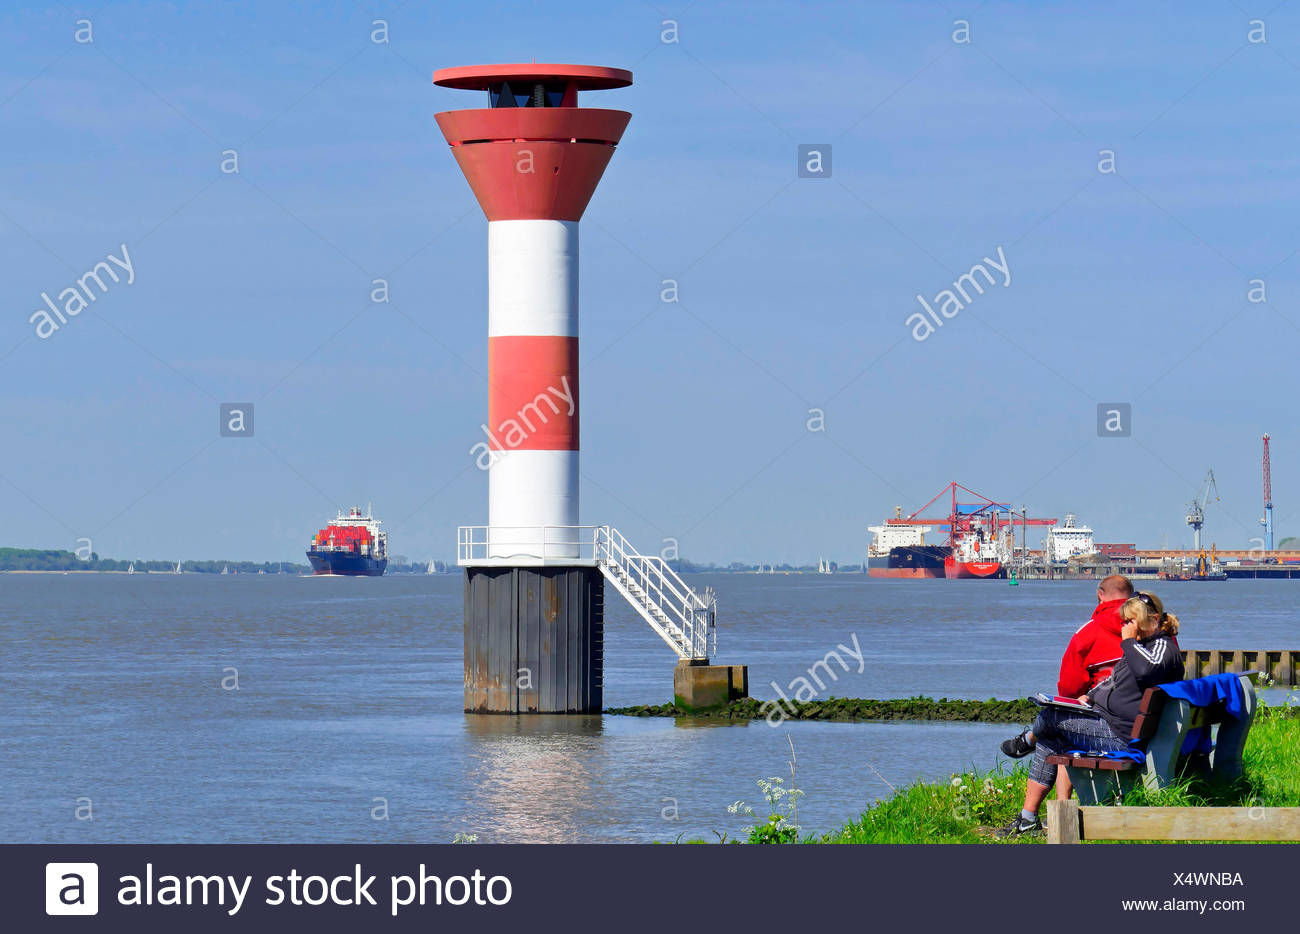 leading lights Buetzeflether Sand, container ship in background, Germany, Lower Saxony, Elbe, Stade Stock Photo